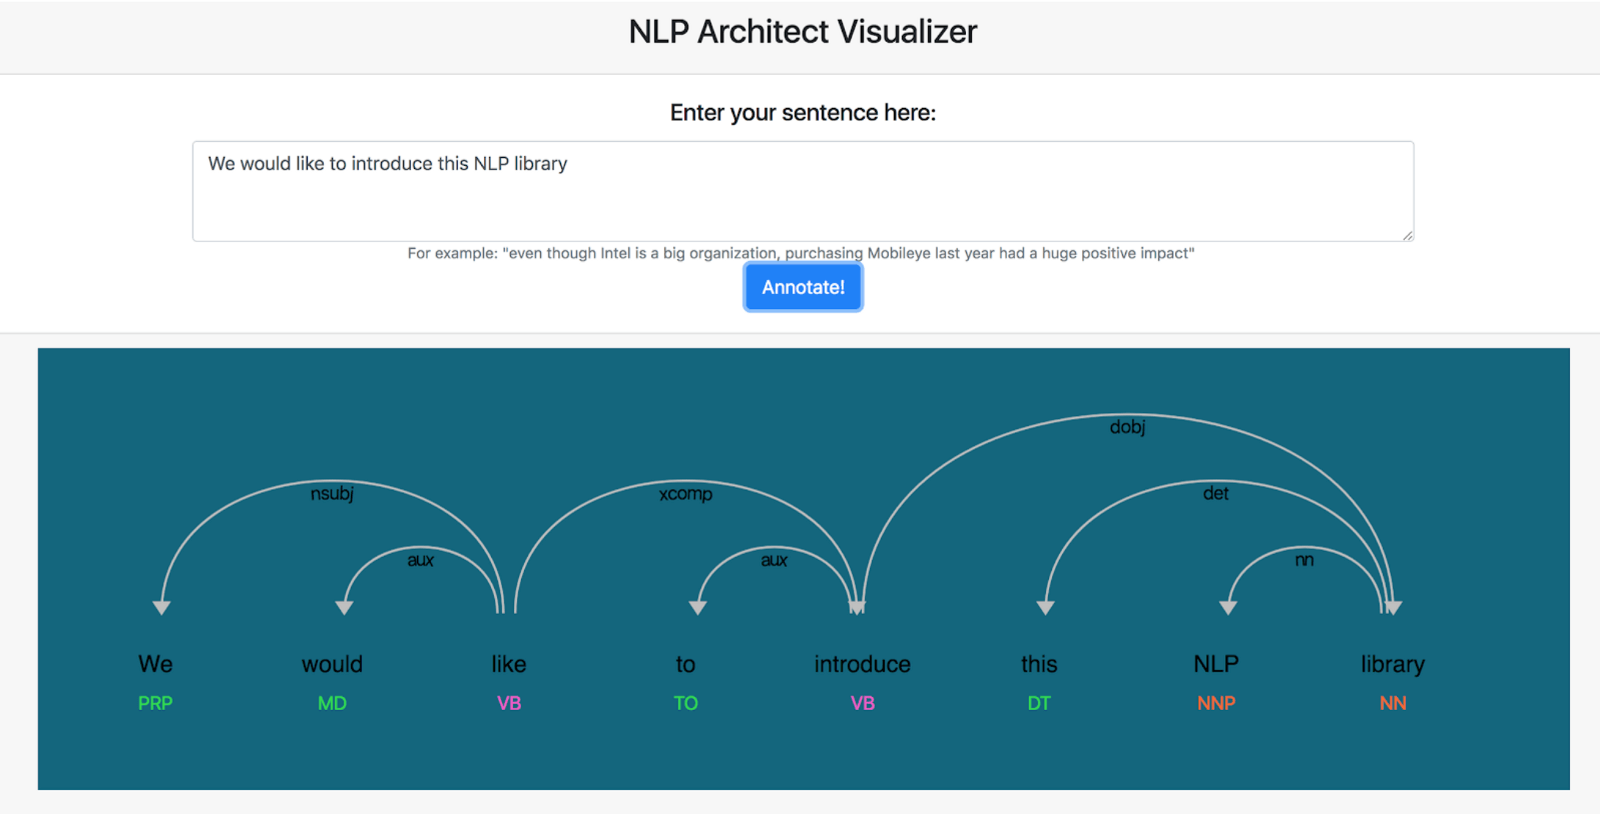 NLP Architect visualizer